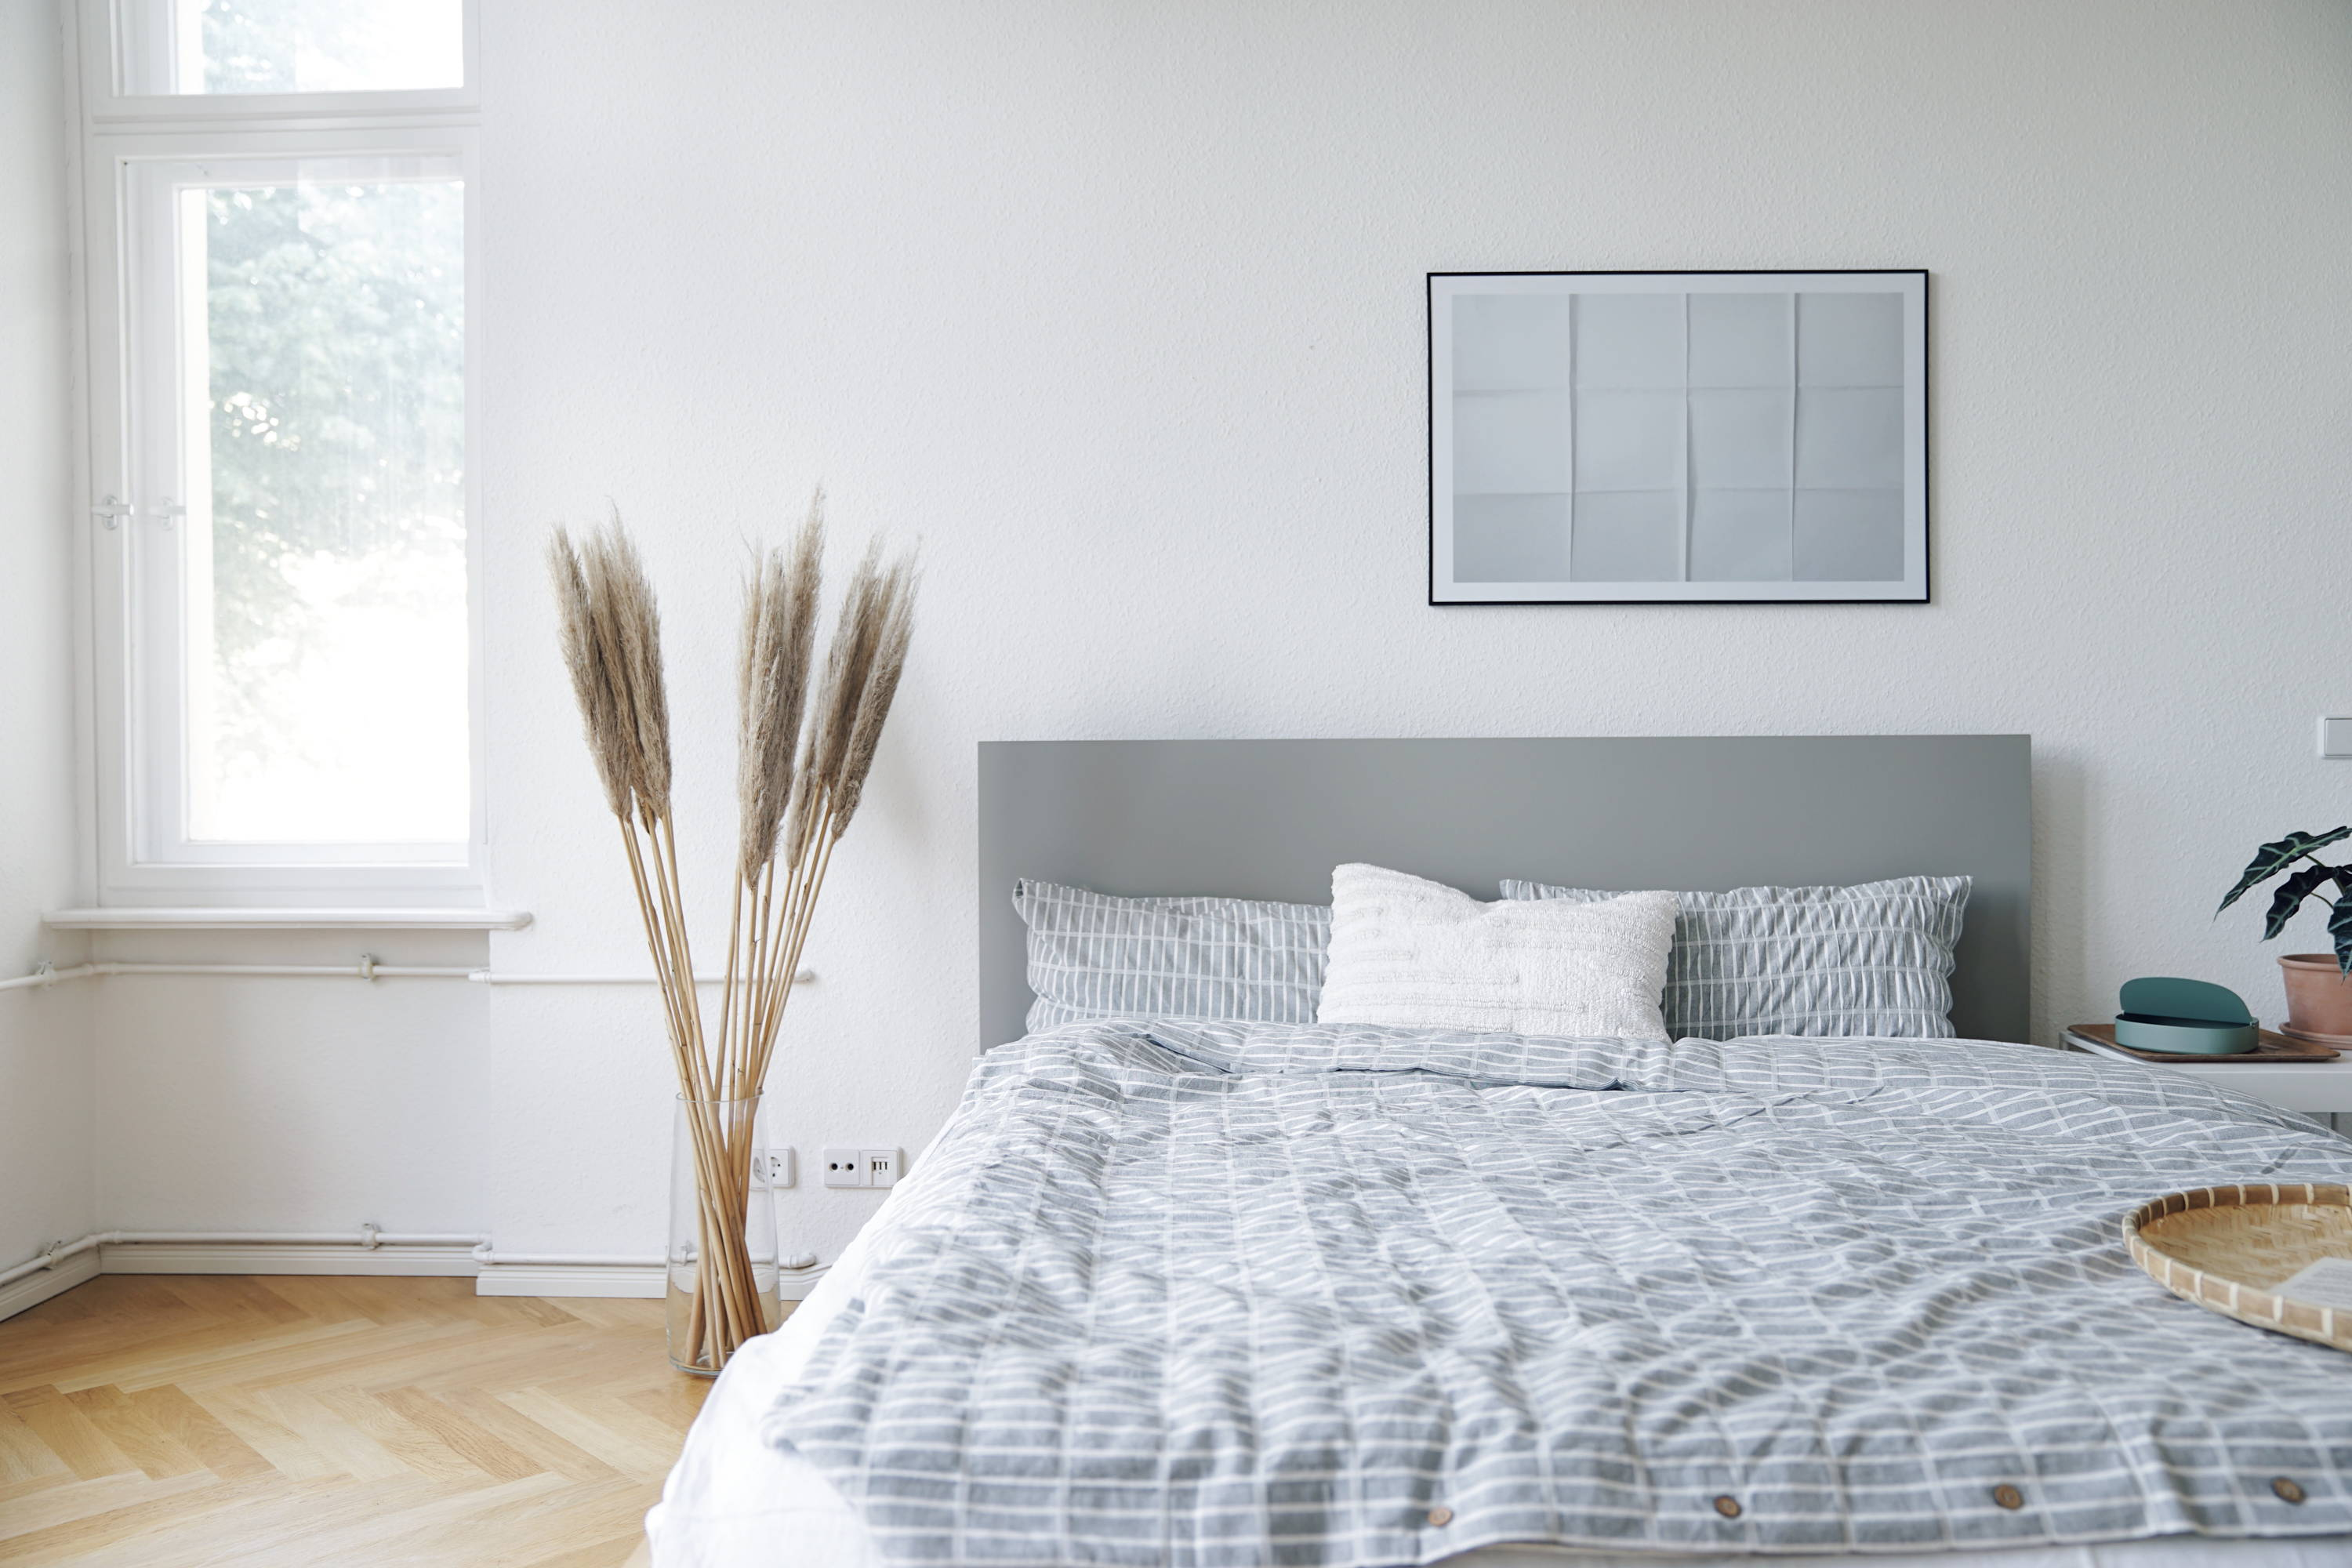 Lagom style bedroom with grey and white bedding, wall art, herringbone floor